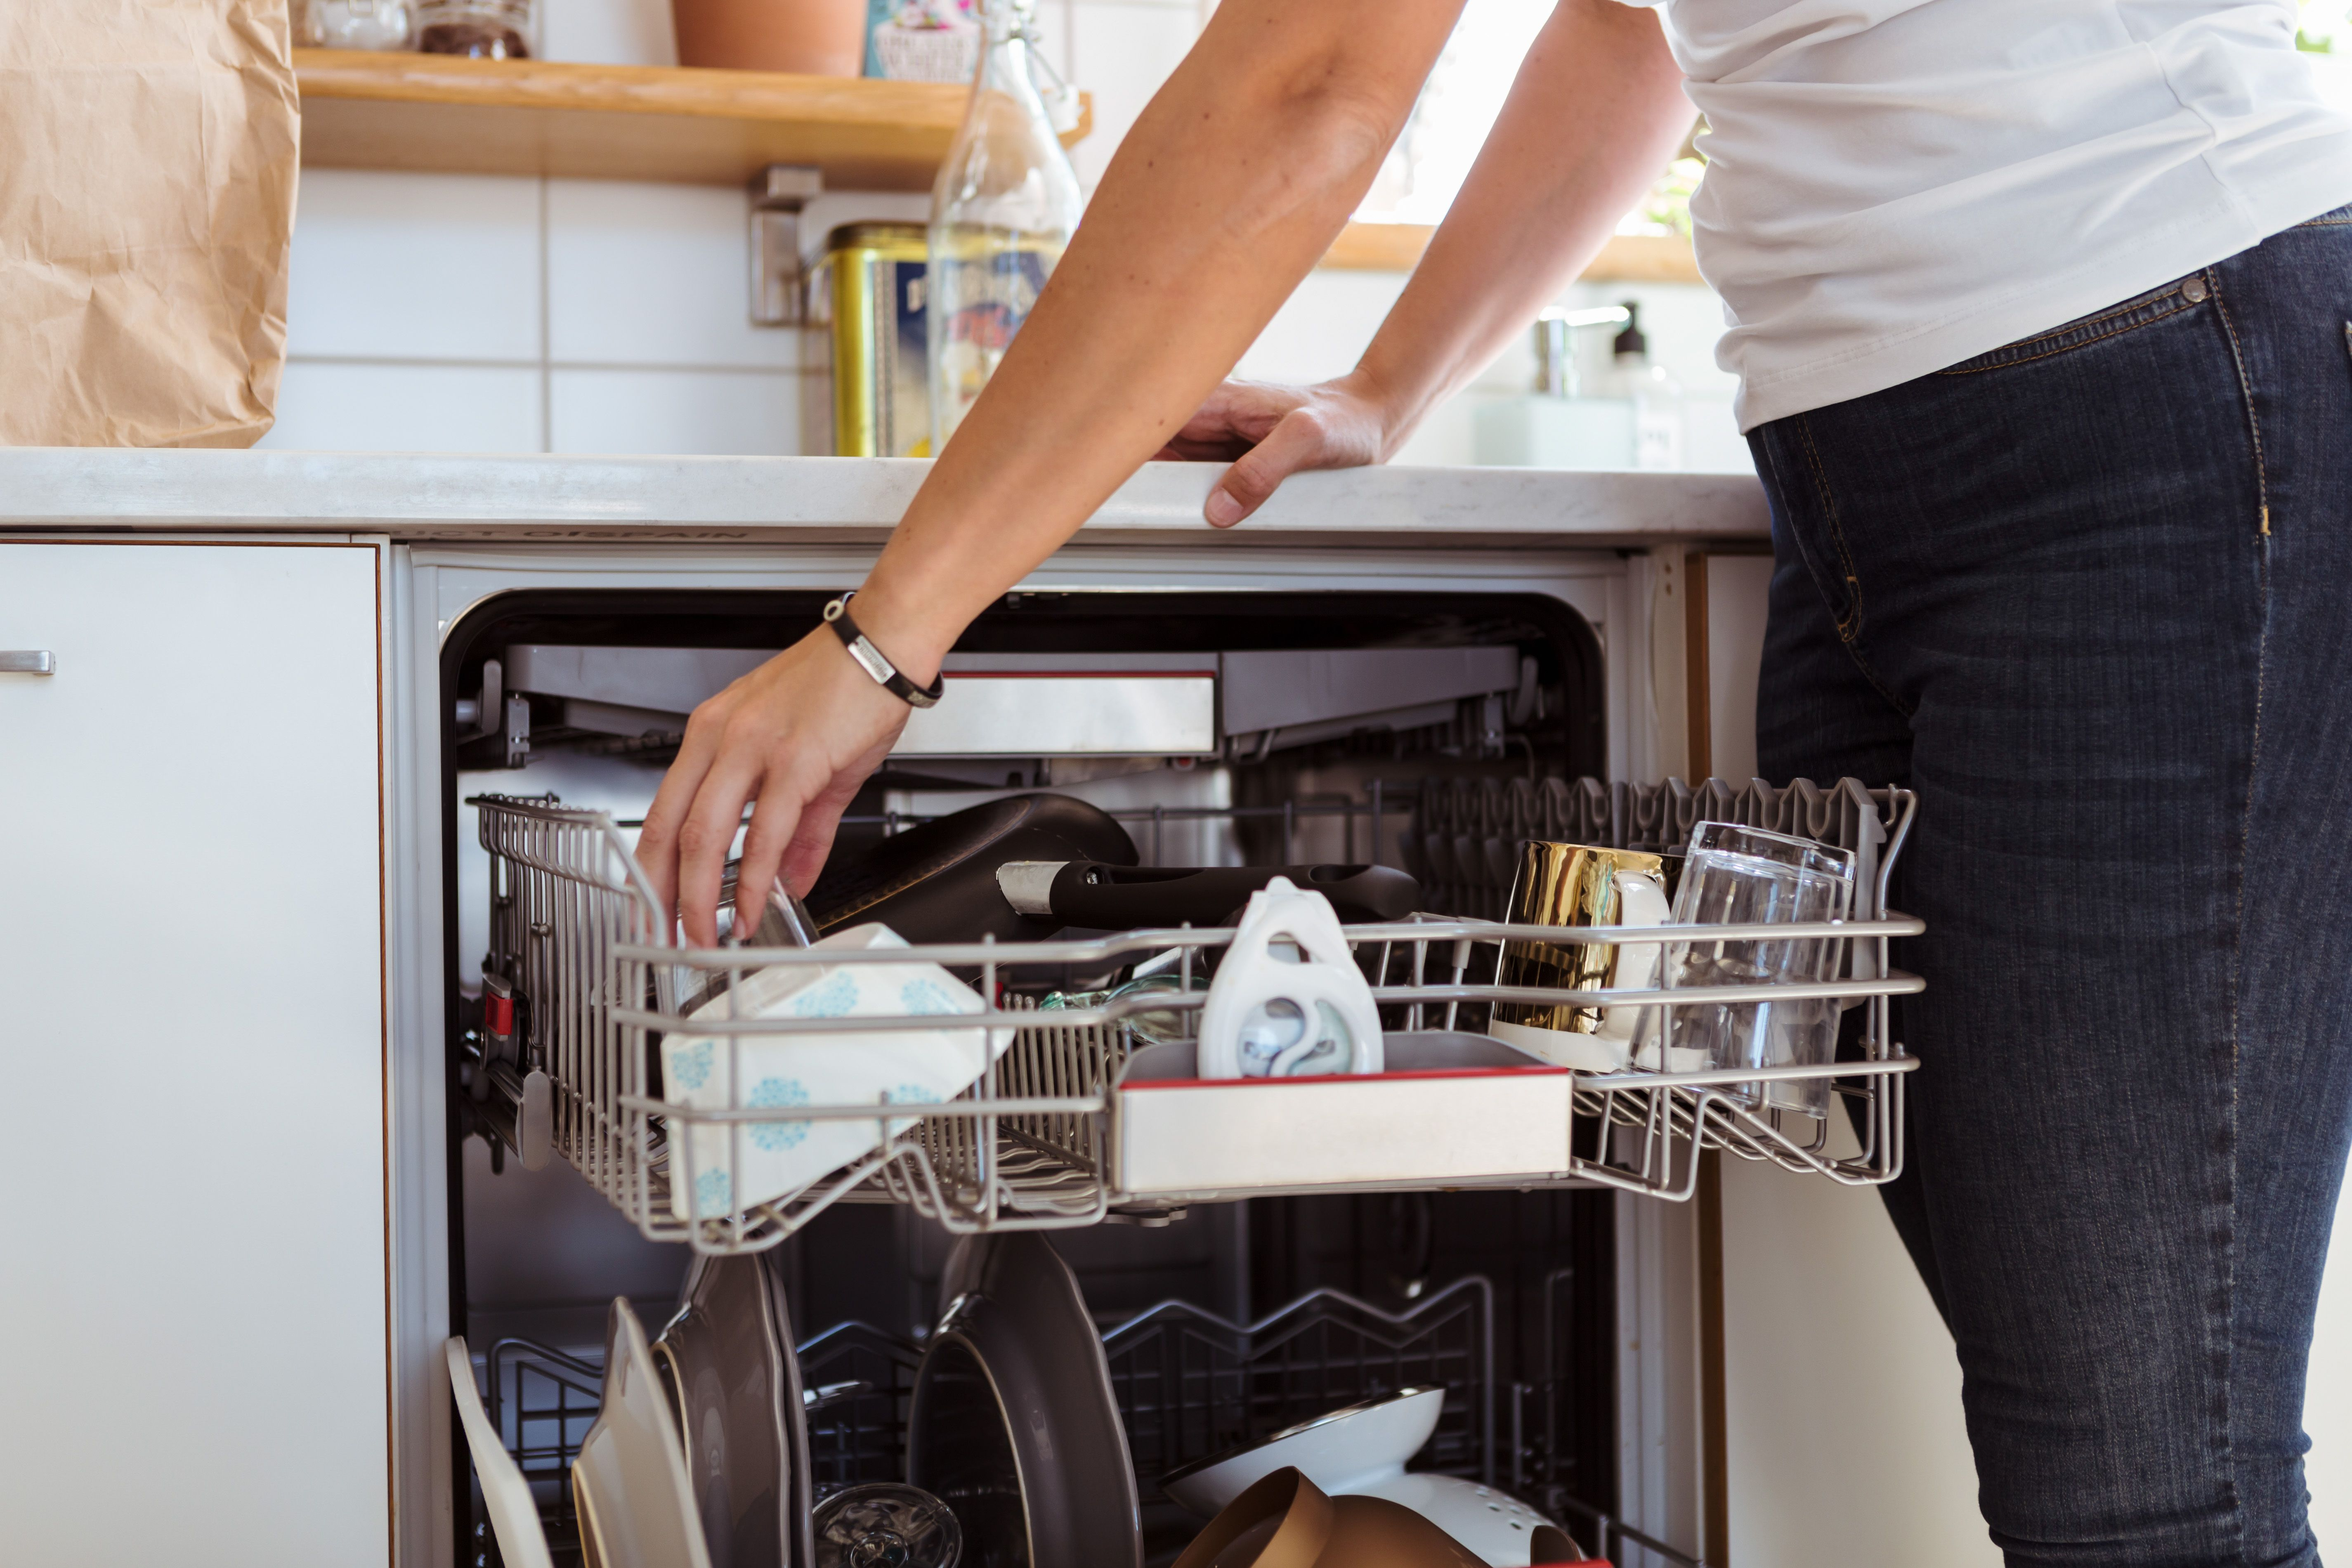 How To Clean A Dishwasher The Right Way According Experts